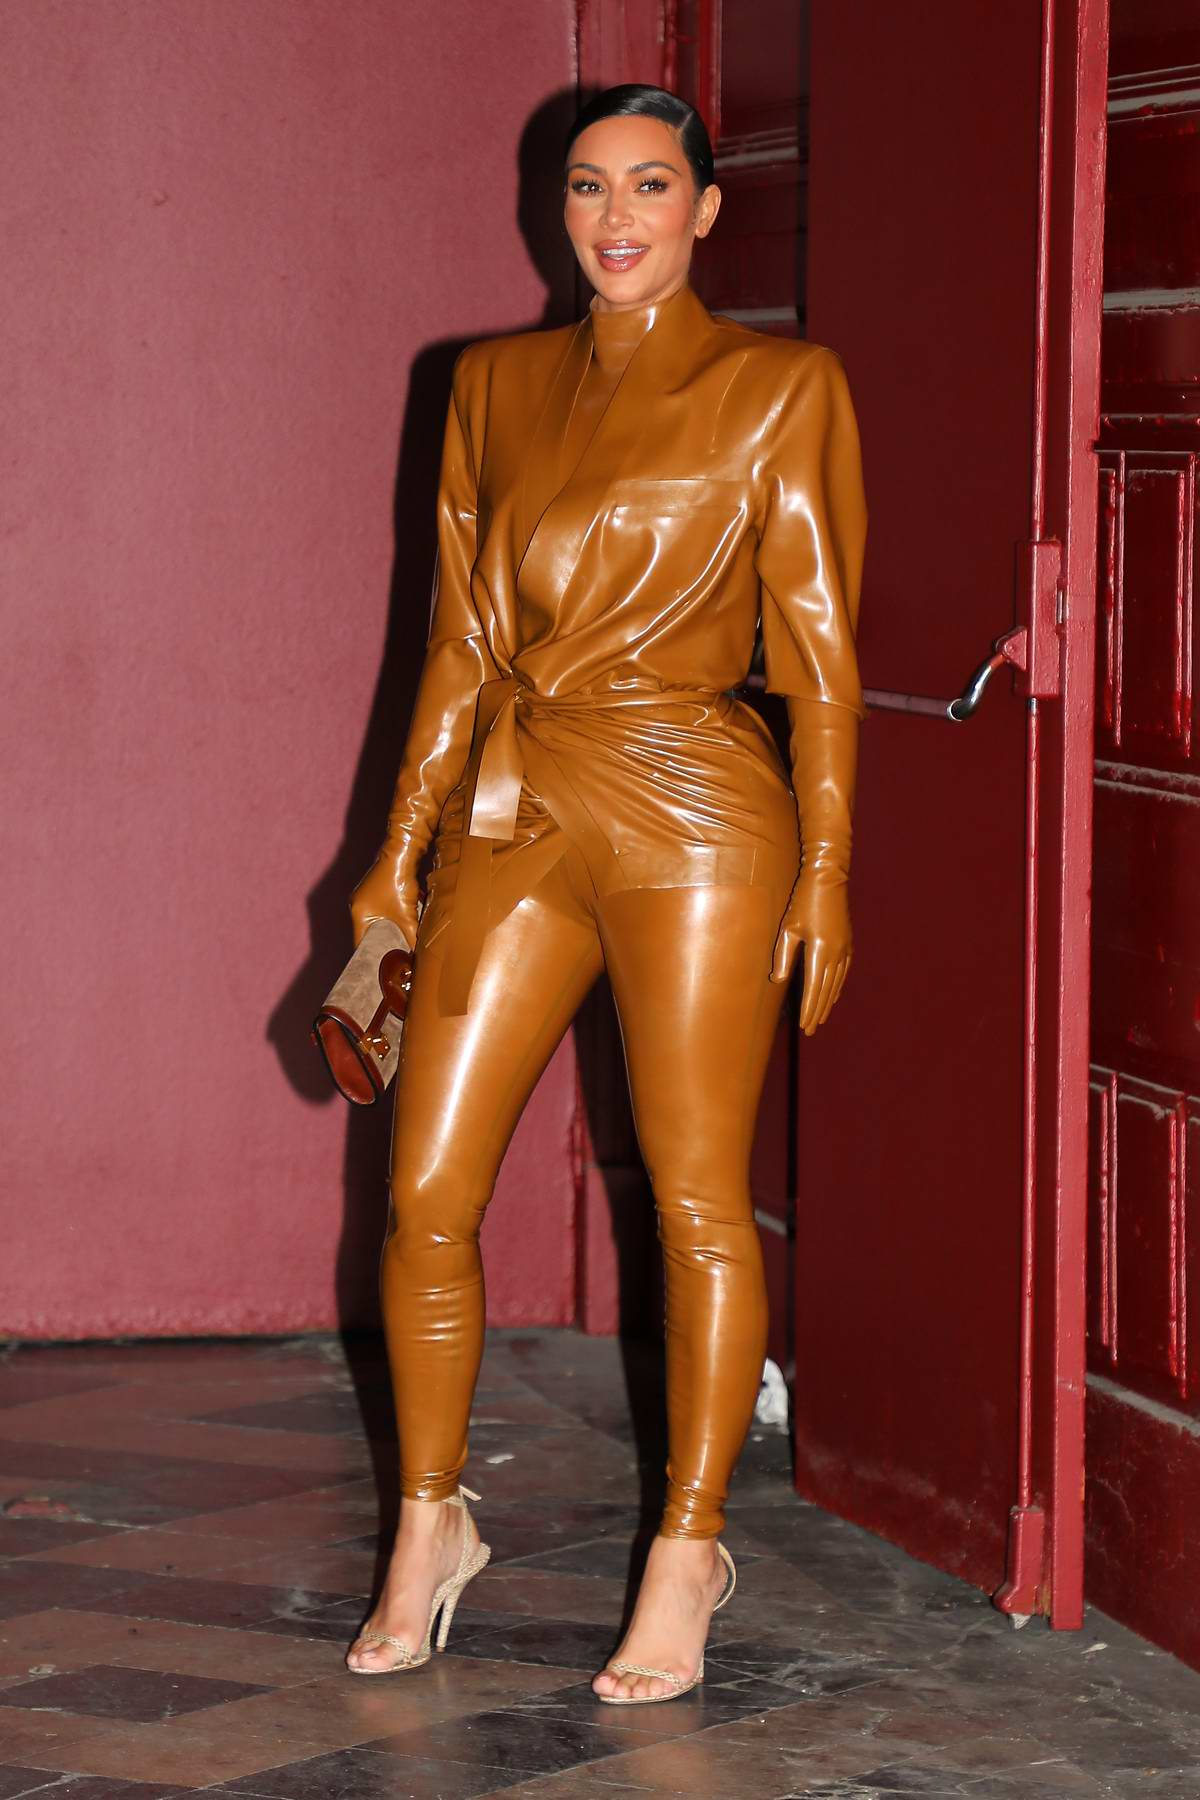 Kim Kardashian dons Balmain latex outfit as she steps out after Kanye's Sunday Service in Paris, France